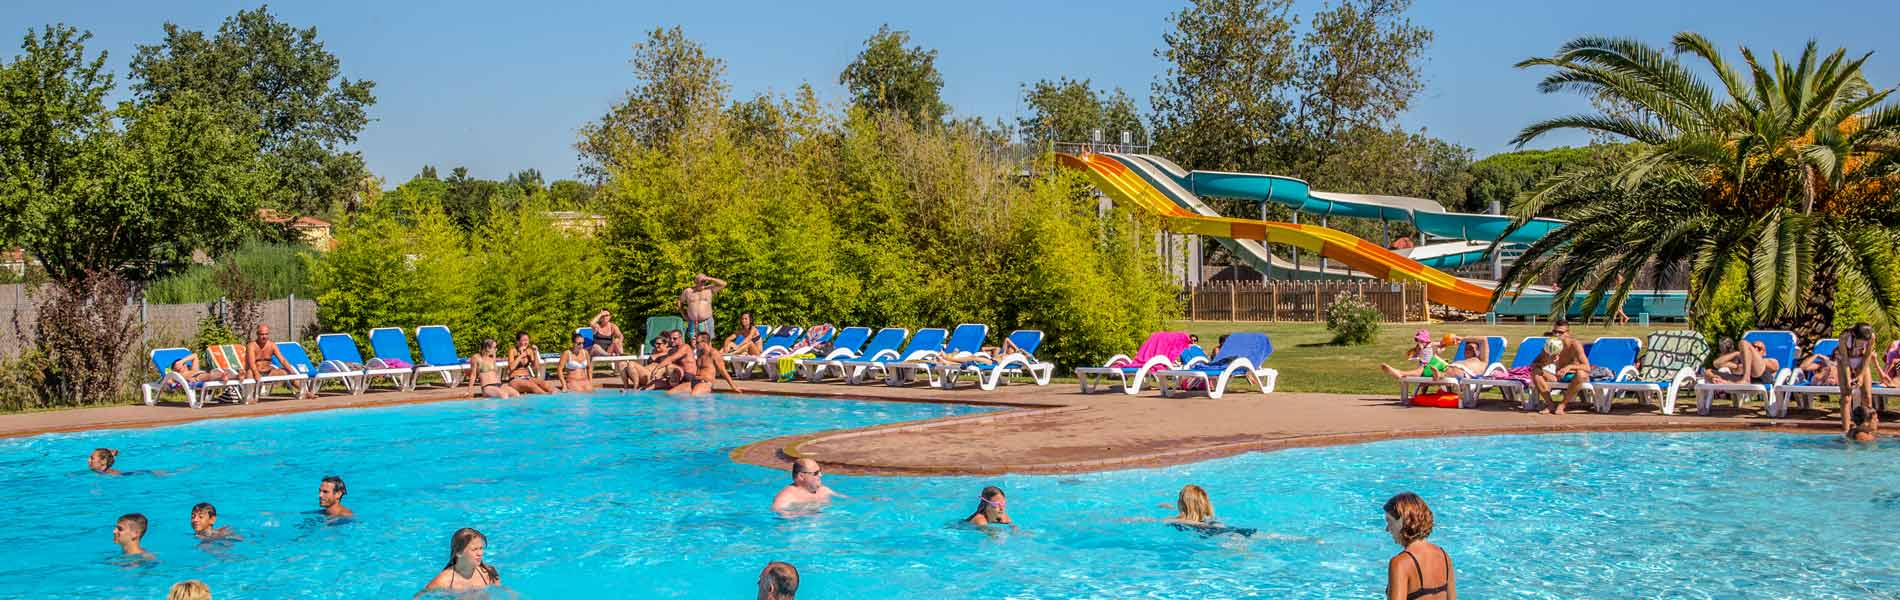 Camping argeles sur mer camping pyrenees orientales for Camping embrun avec piscine 4 etoiles